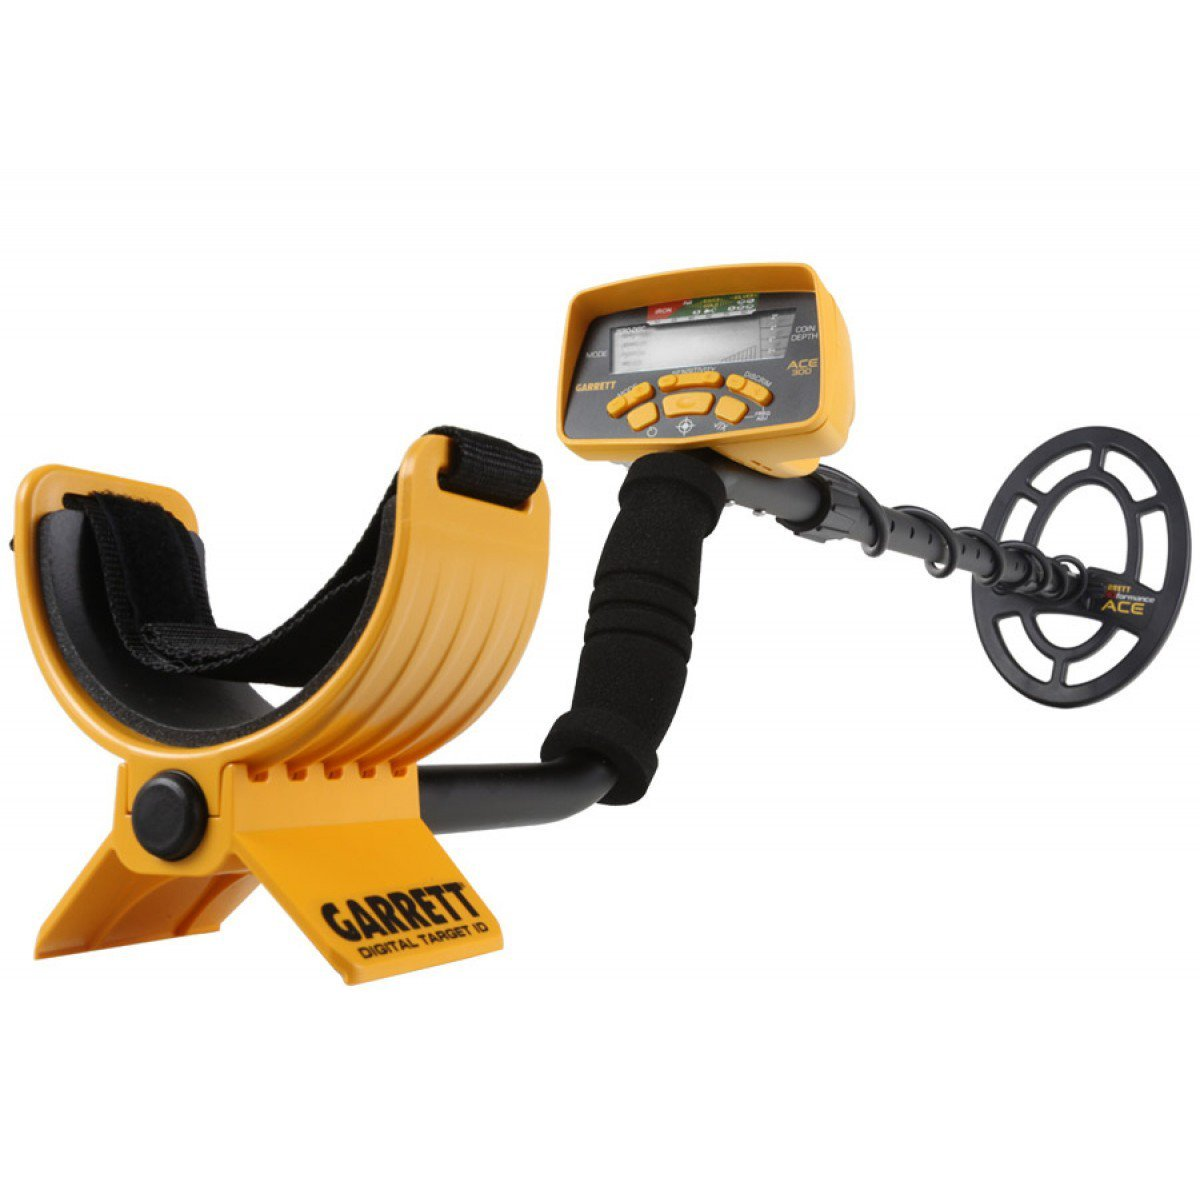 Jestik Garrett ACE 300 Metal Detector with Waterproof Coil and Headphone Plus Free Accessories